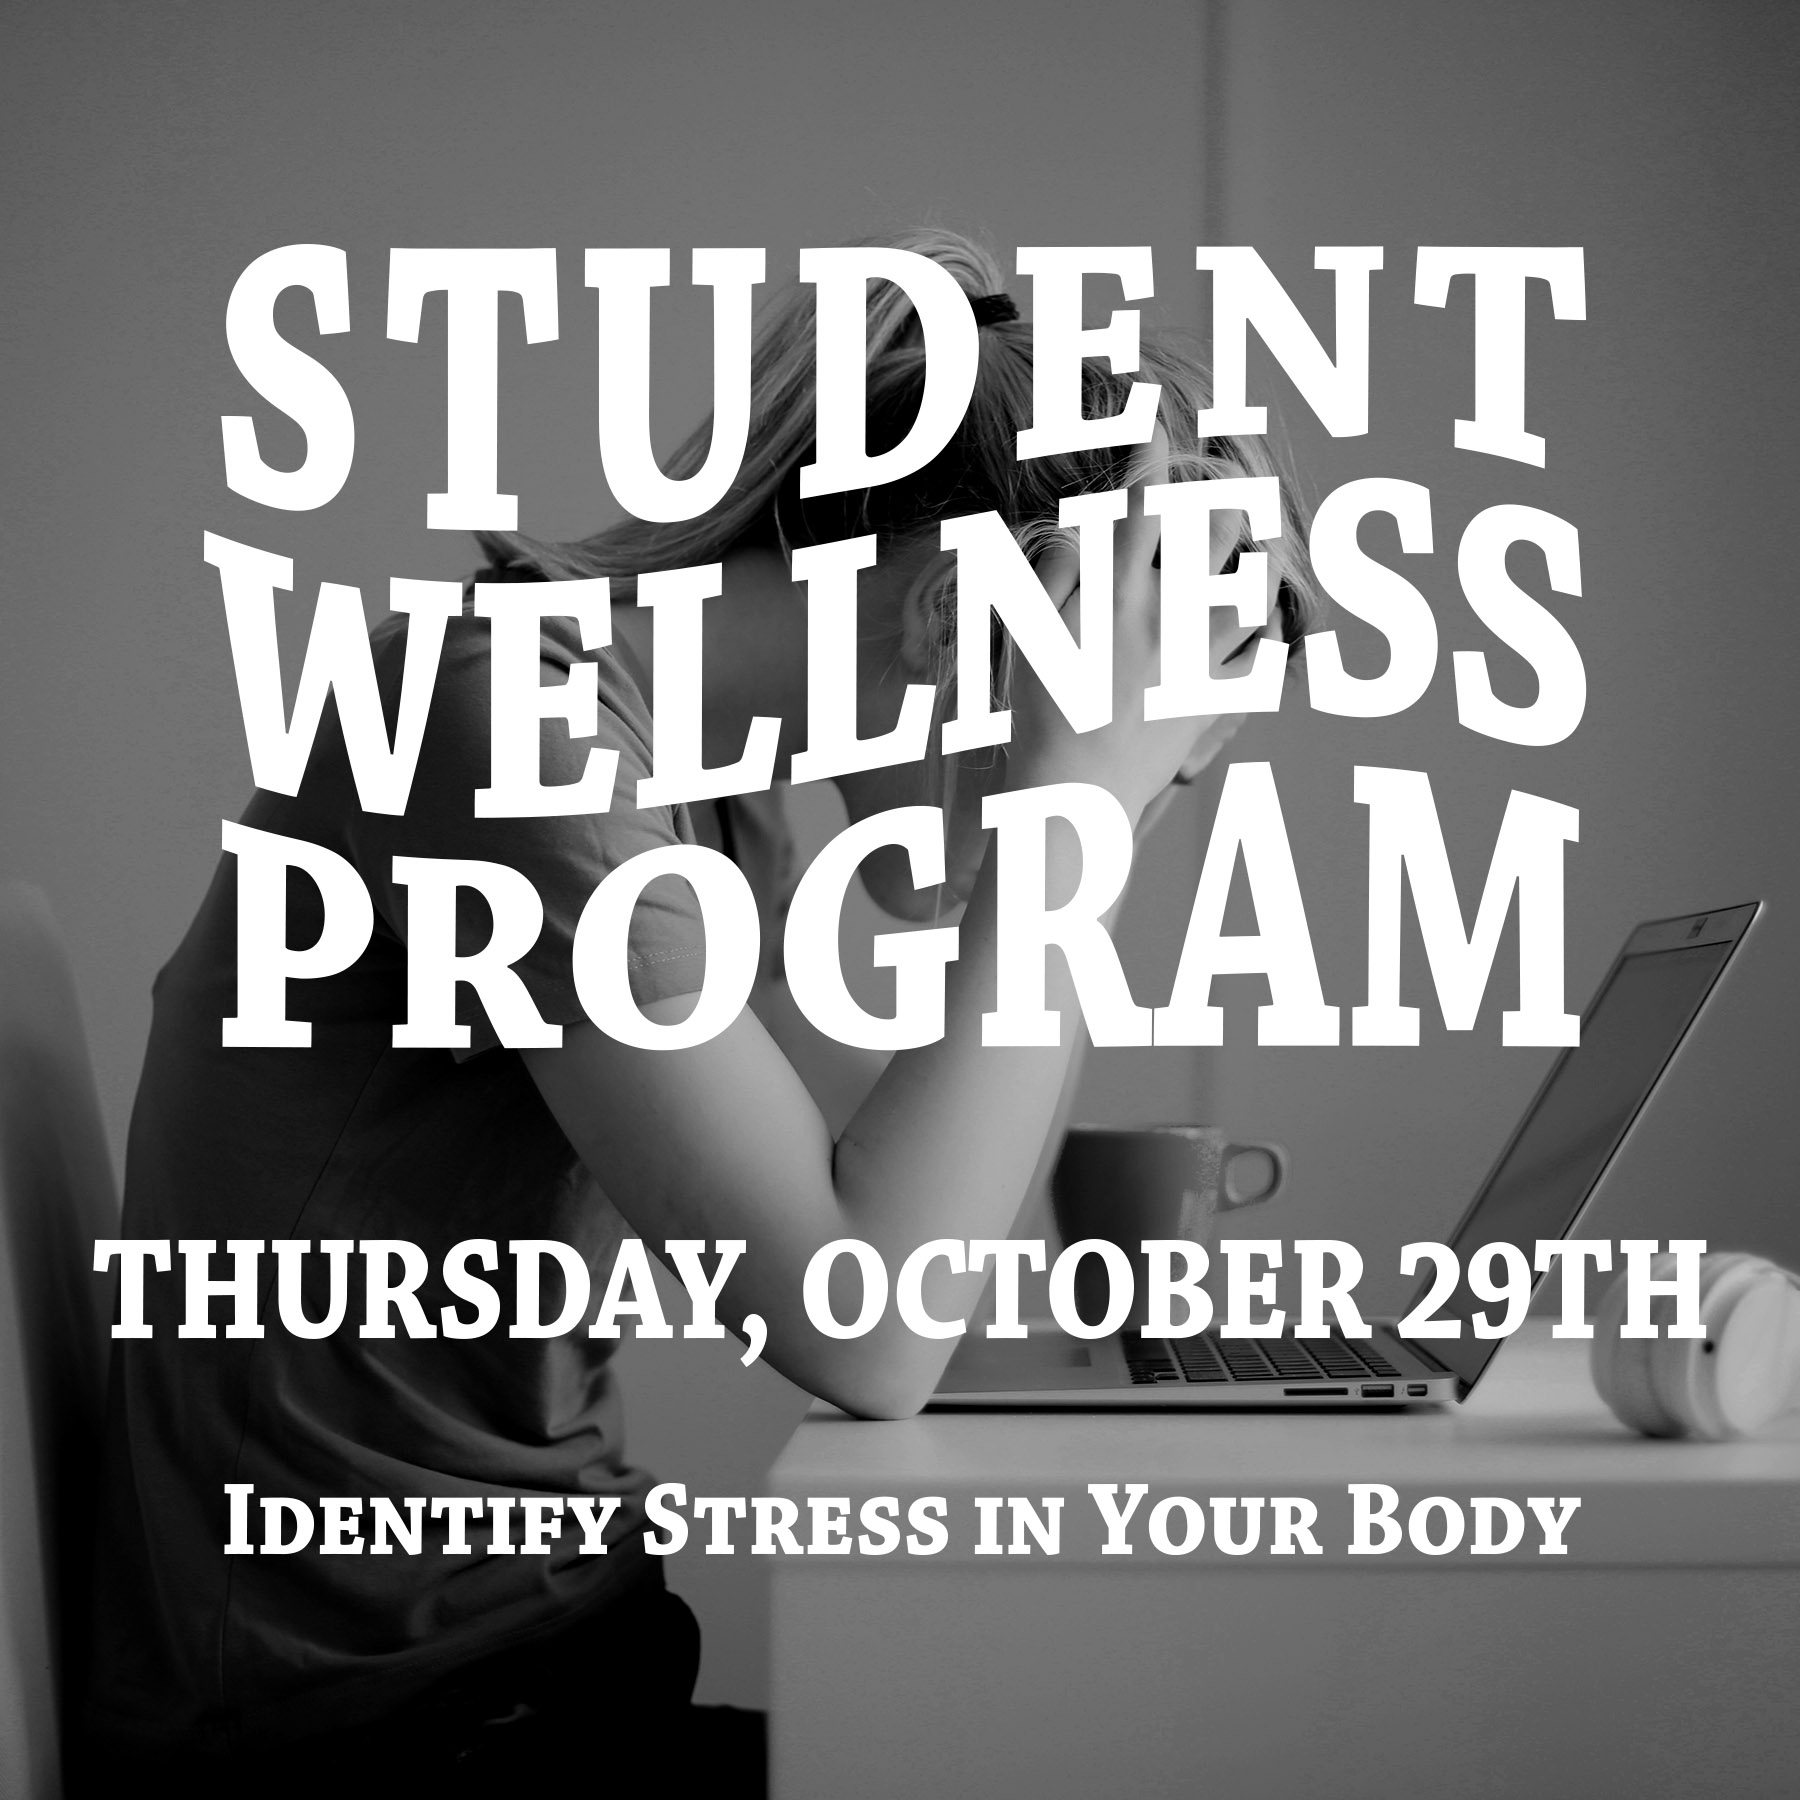 Identify Stress in your body workshop October 29th